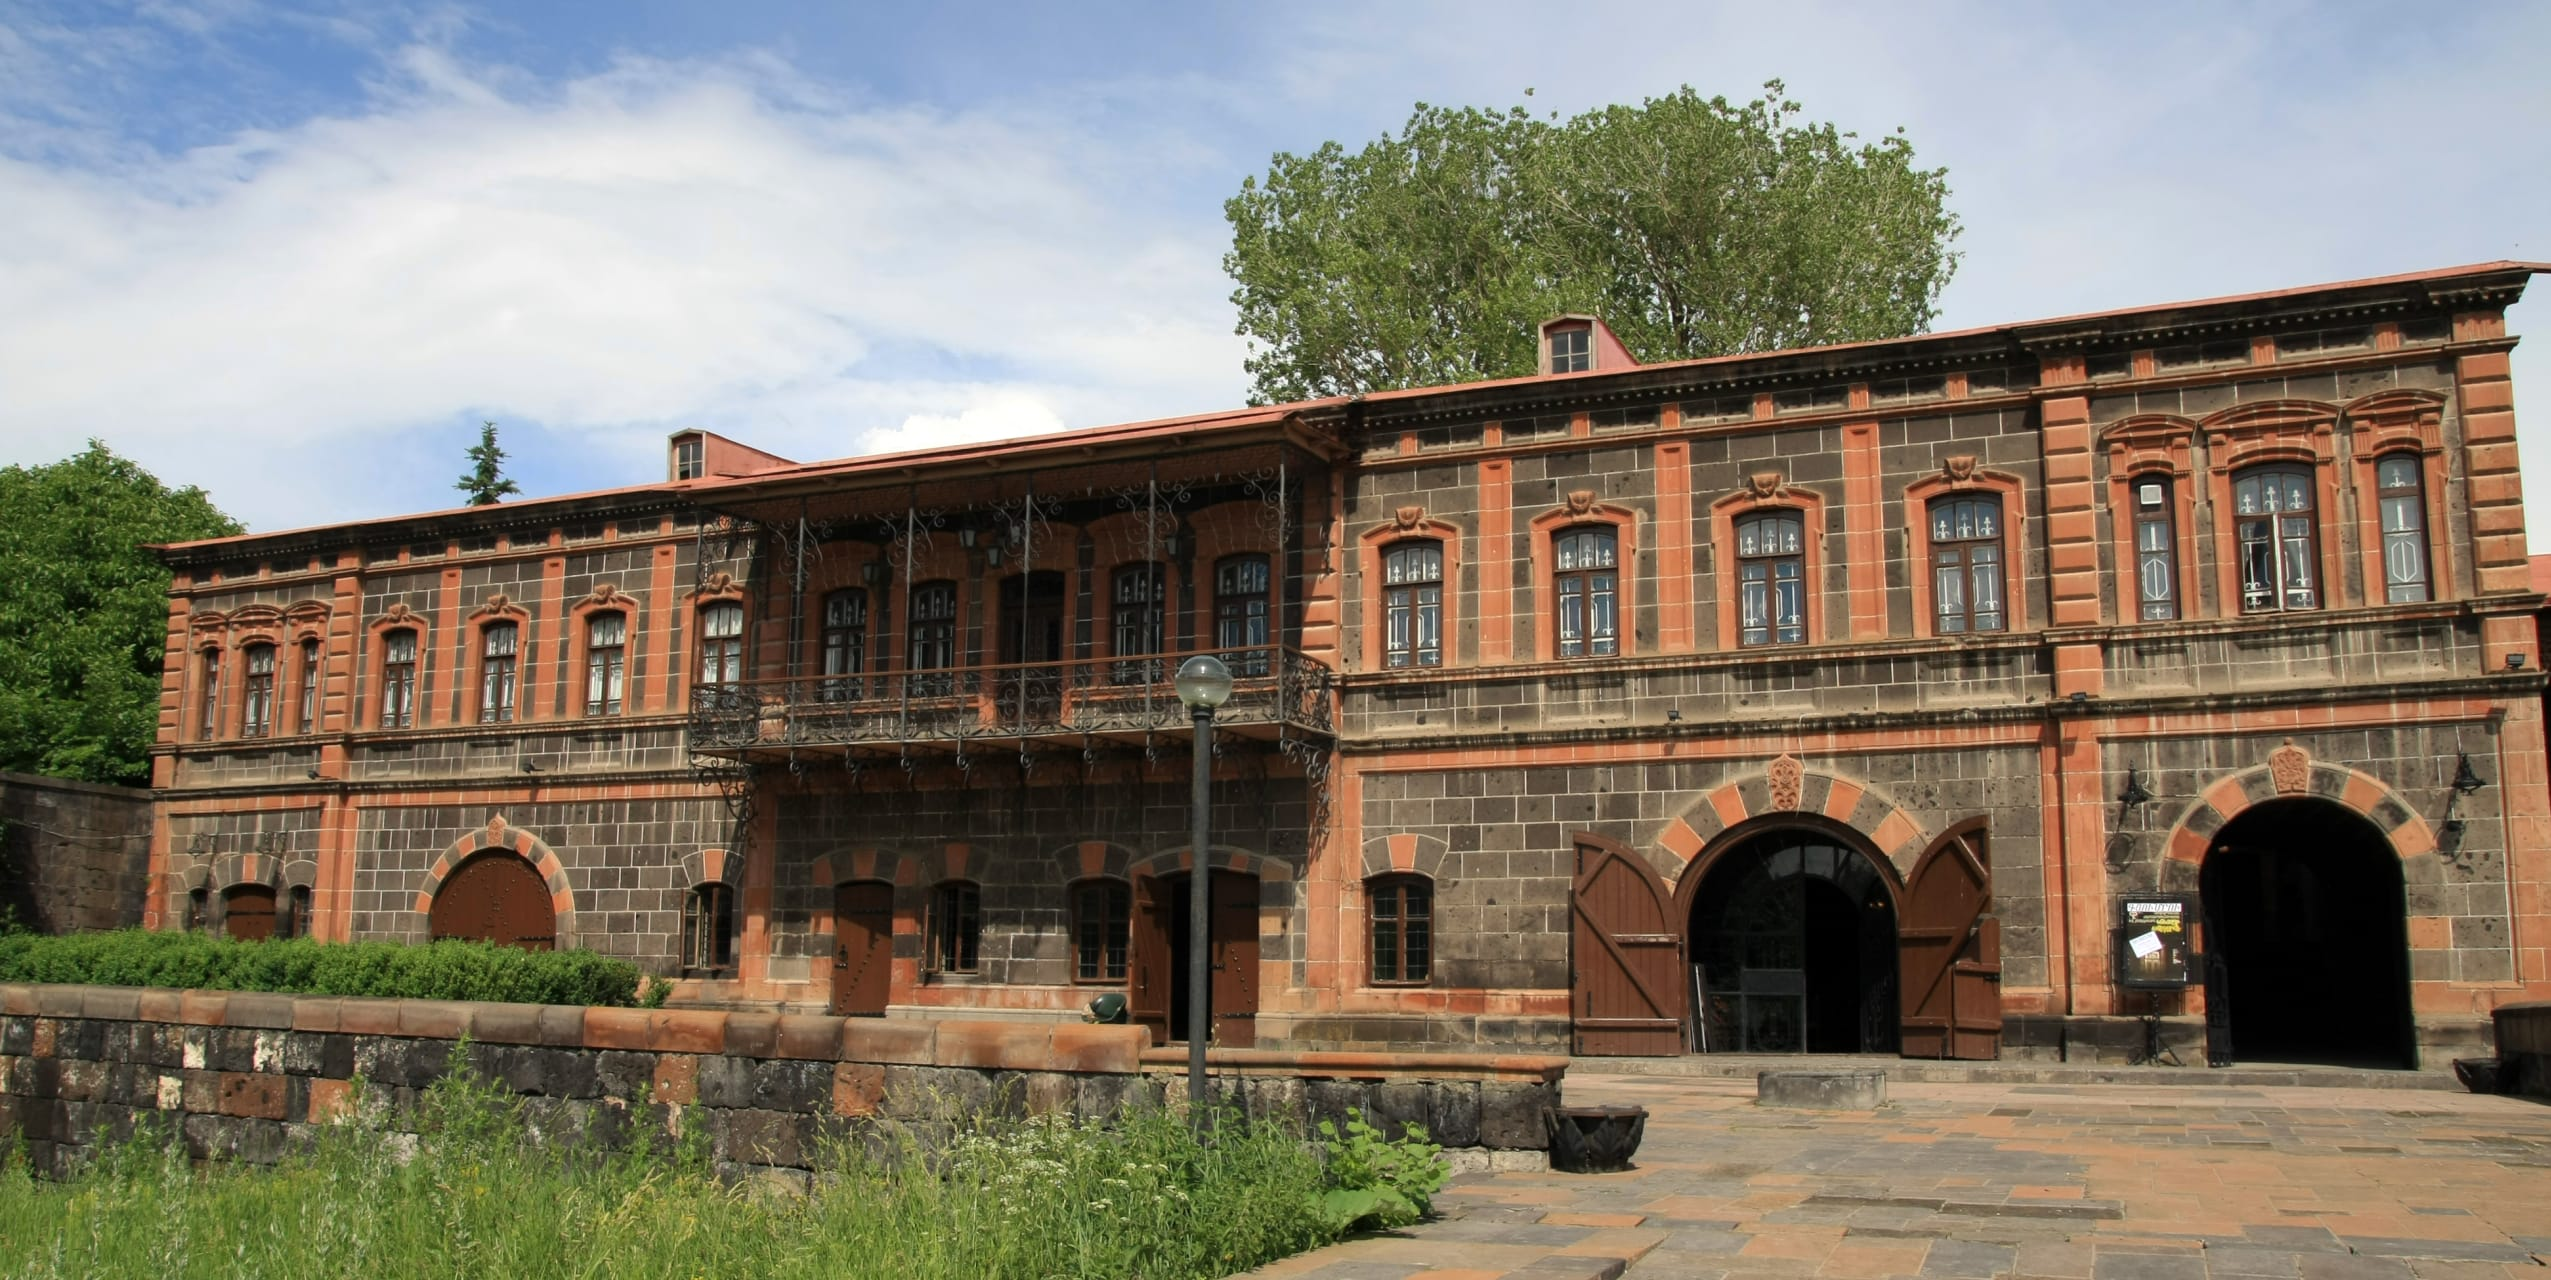 Gyumri - Museum of Social life and National Architecture in Gyumri